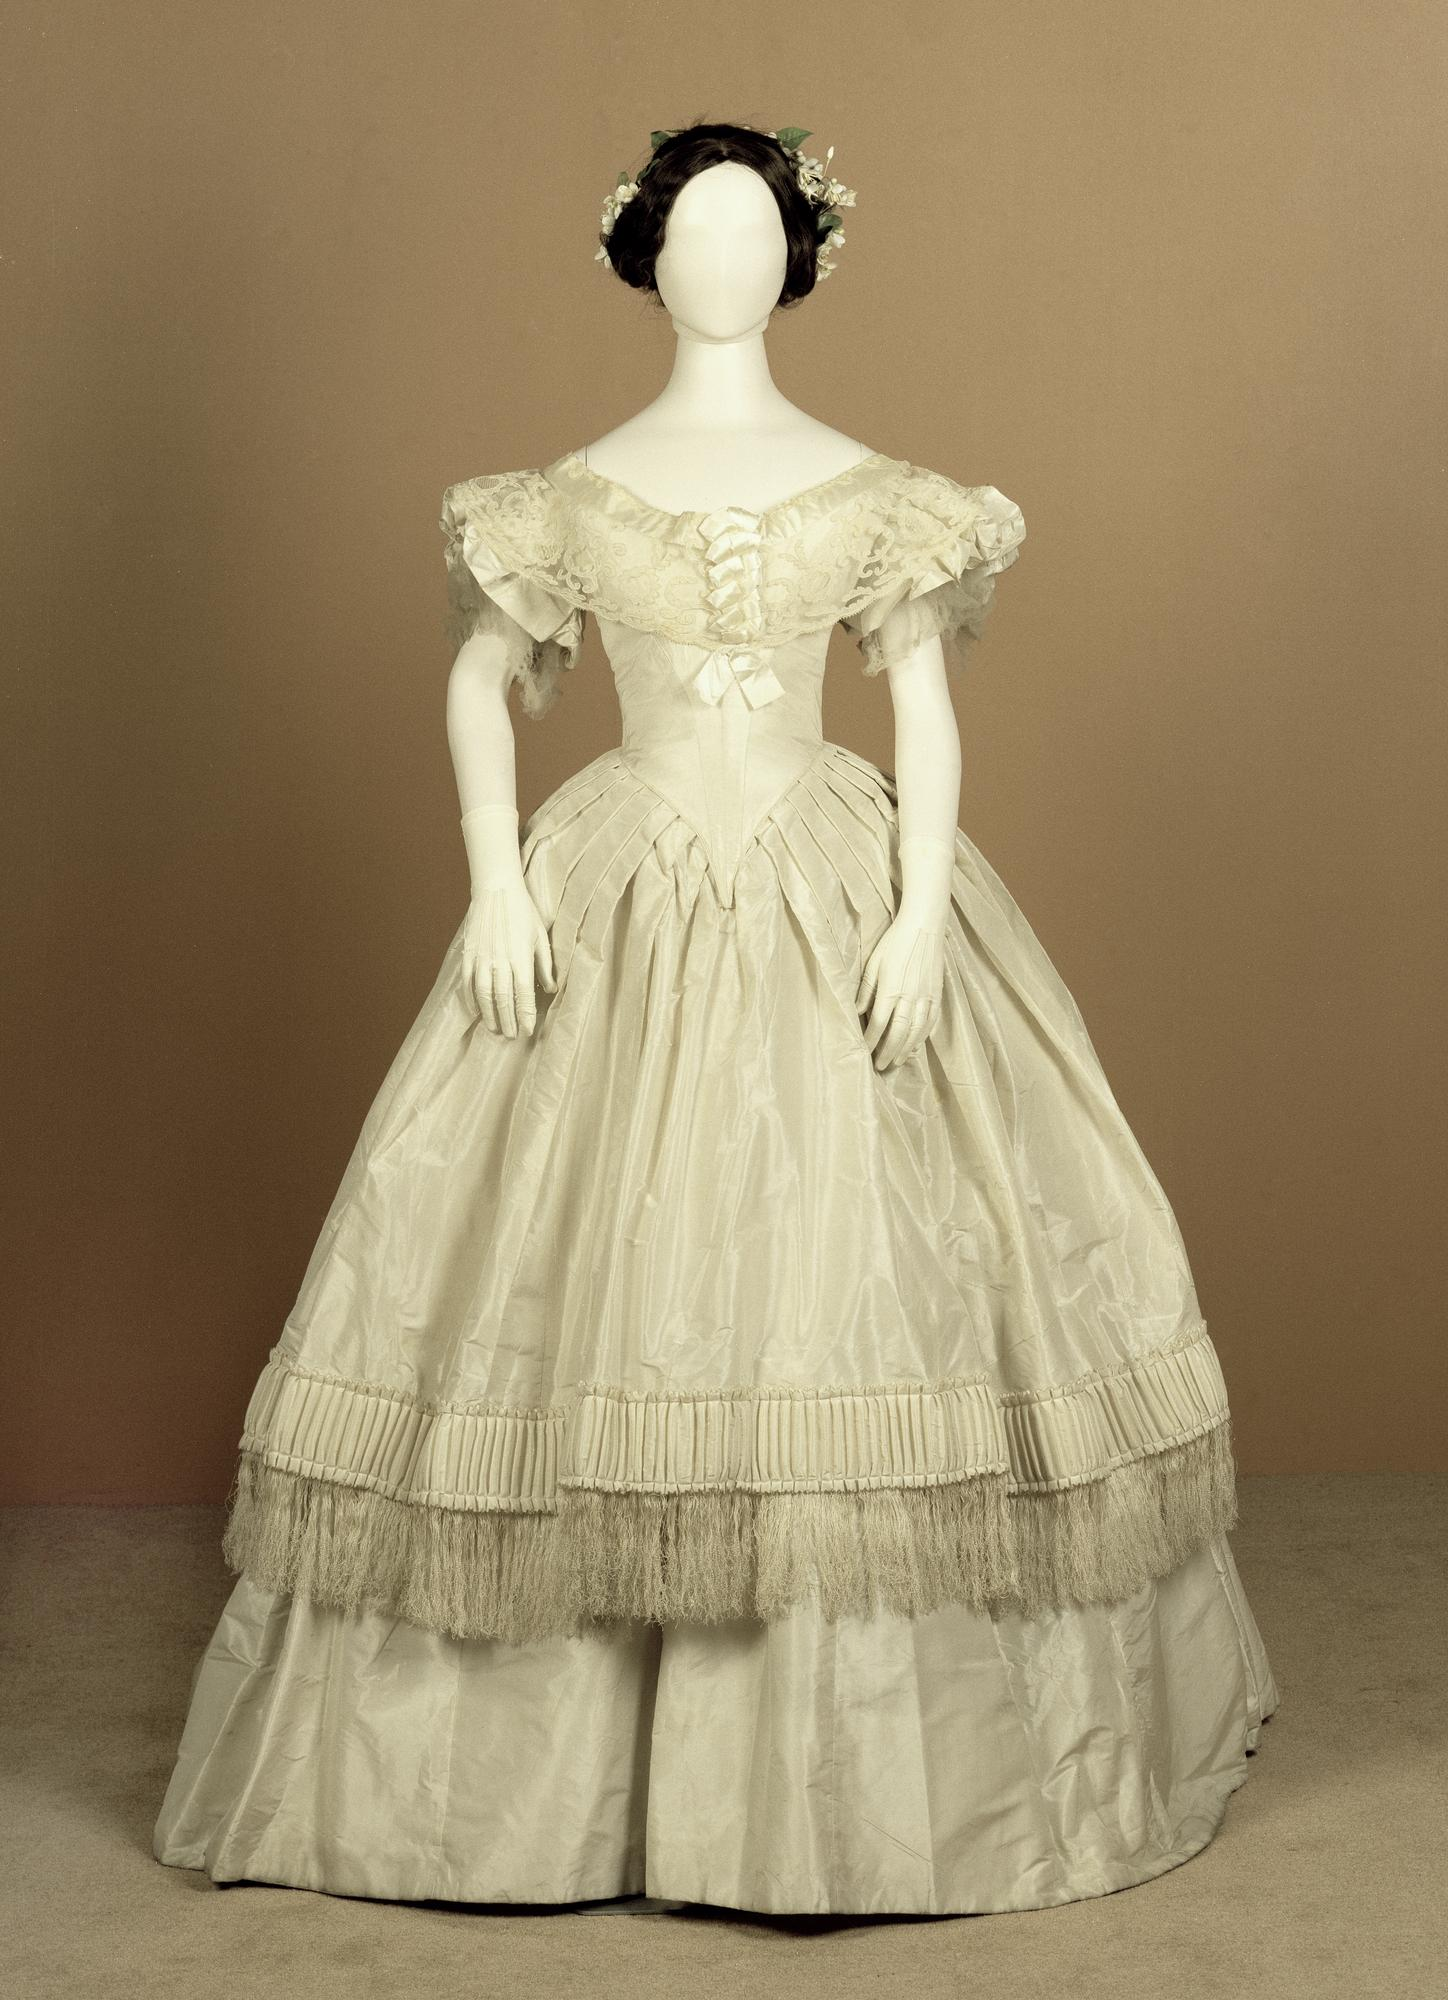 Dress of white silk taffeta trimmed with white silk fringing, part of a woman's evening dress: British, c. 1852 - 1857.